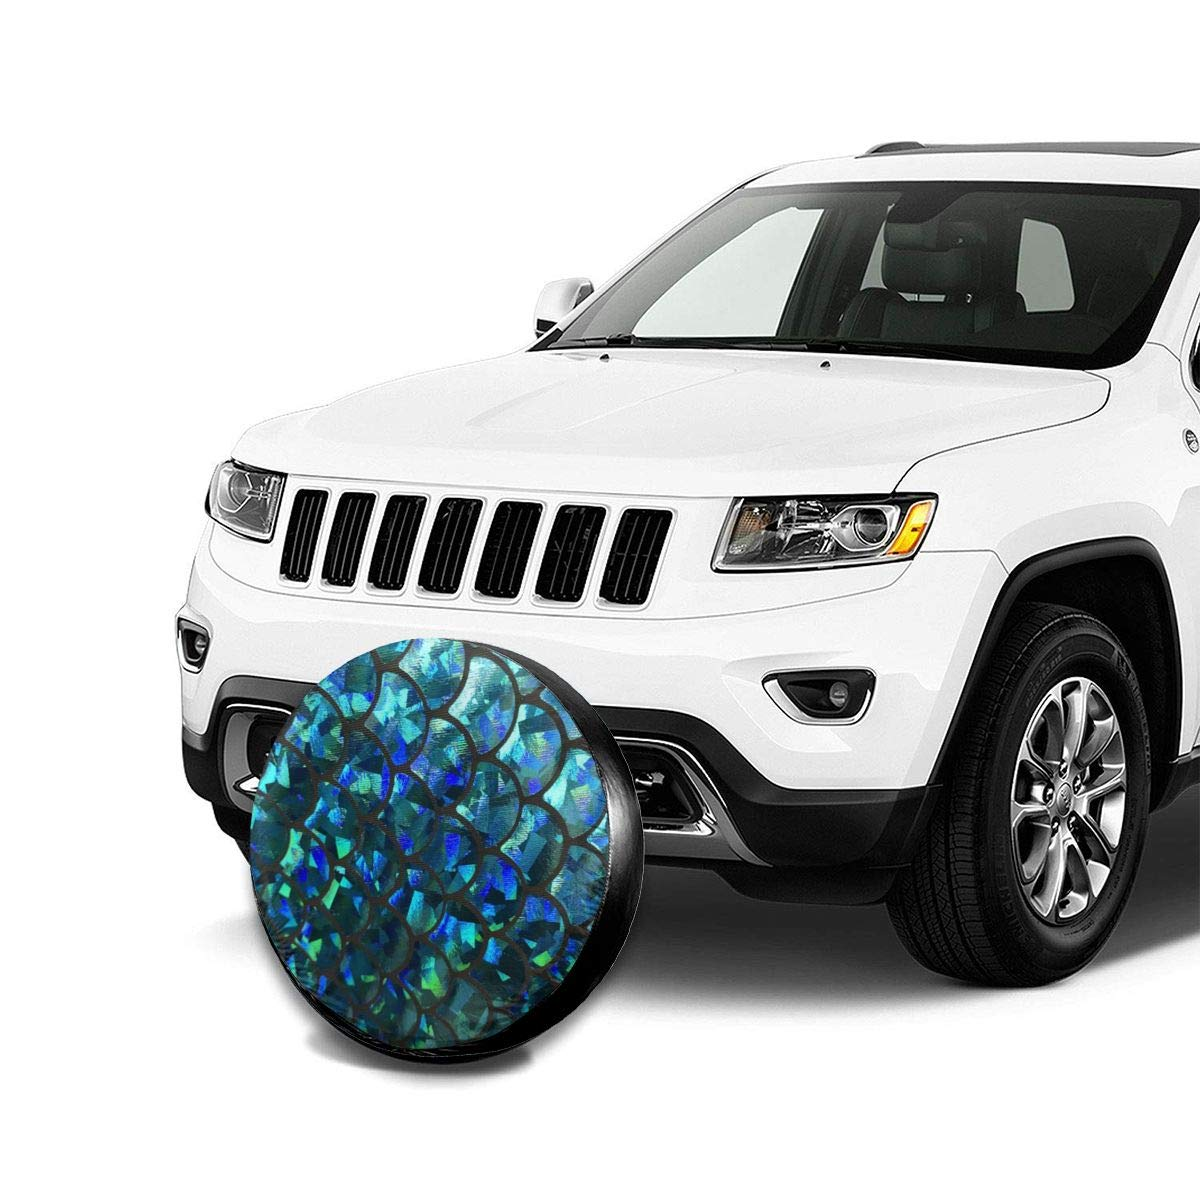 Tire Cover Turquoise Stretch Mermaid Scales Polyester Universal Spare Wheel Tire Cover Wheel Covers Jeep Trailer RV SUV Truck Camper Travel Trailer Accessories 14,15,16,17 Inch